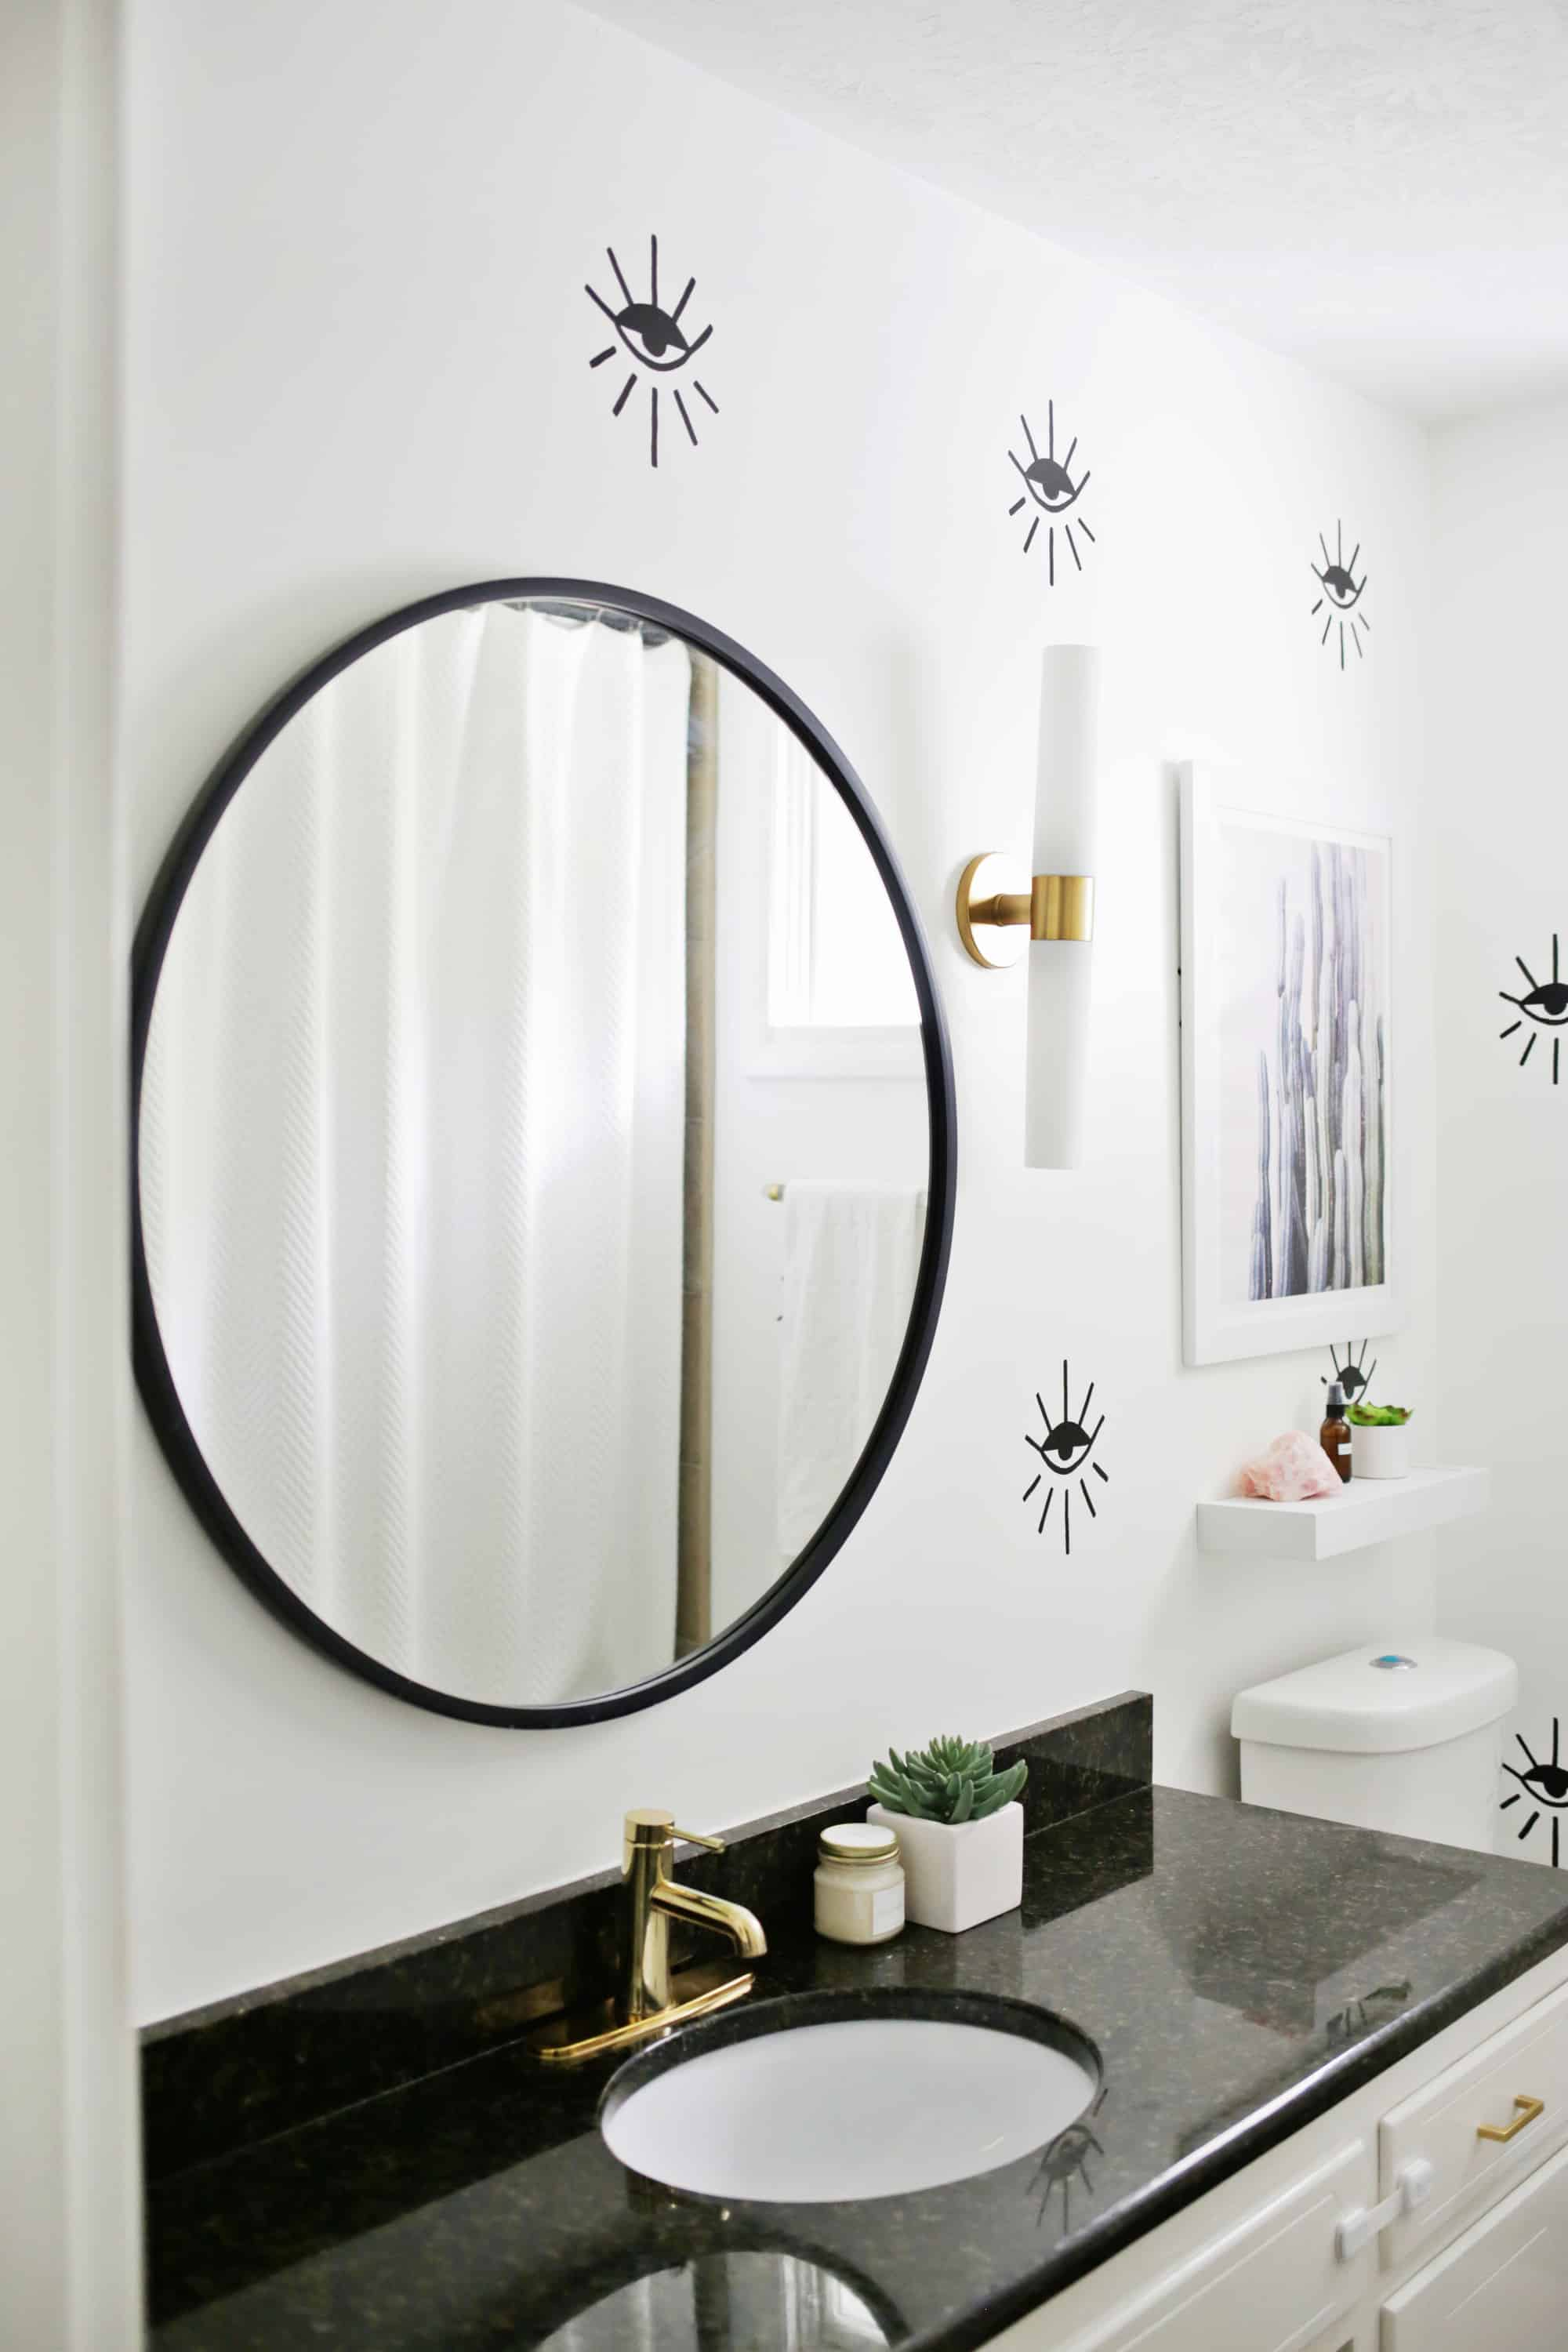 5 Places In Your Home Where You Should Hang A Mirror - A Beautiful Mess